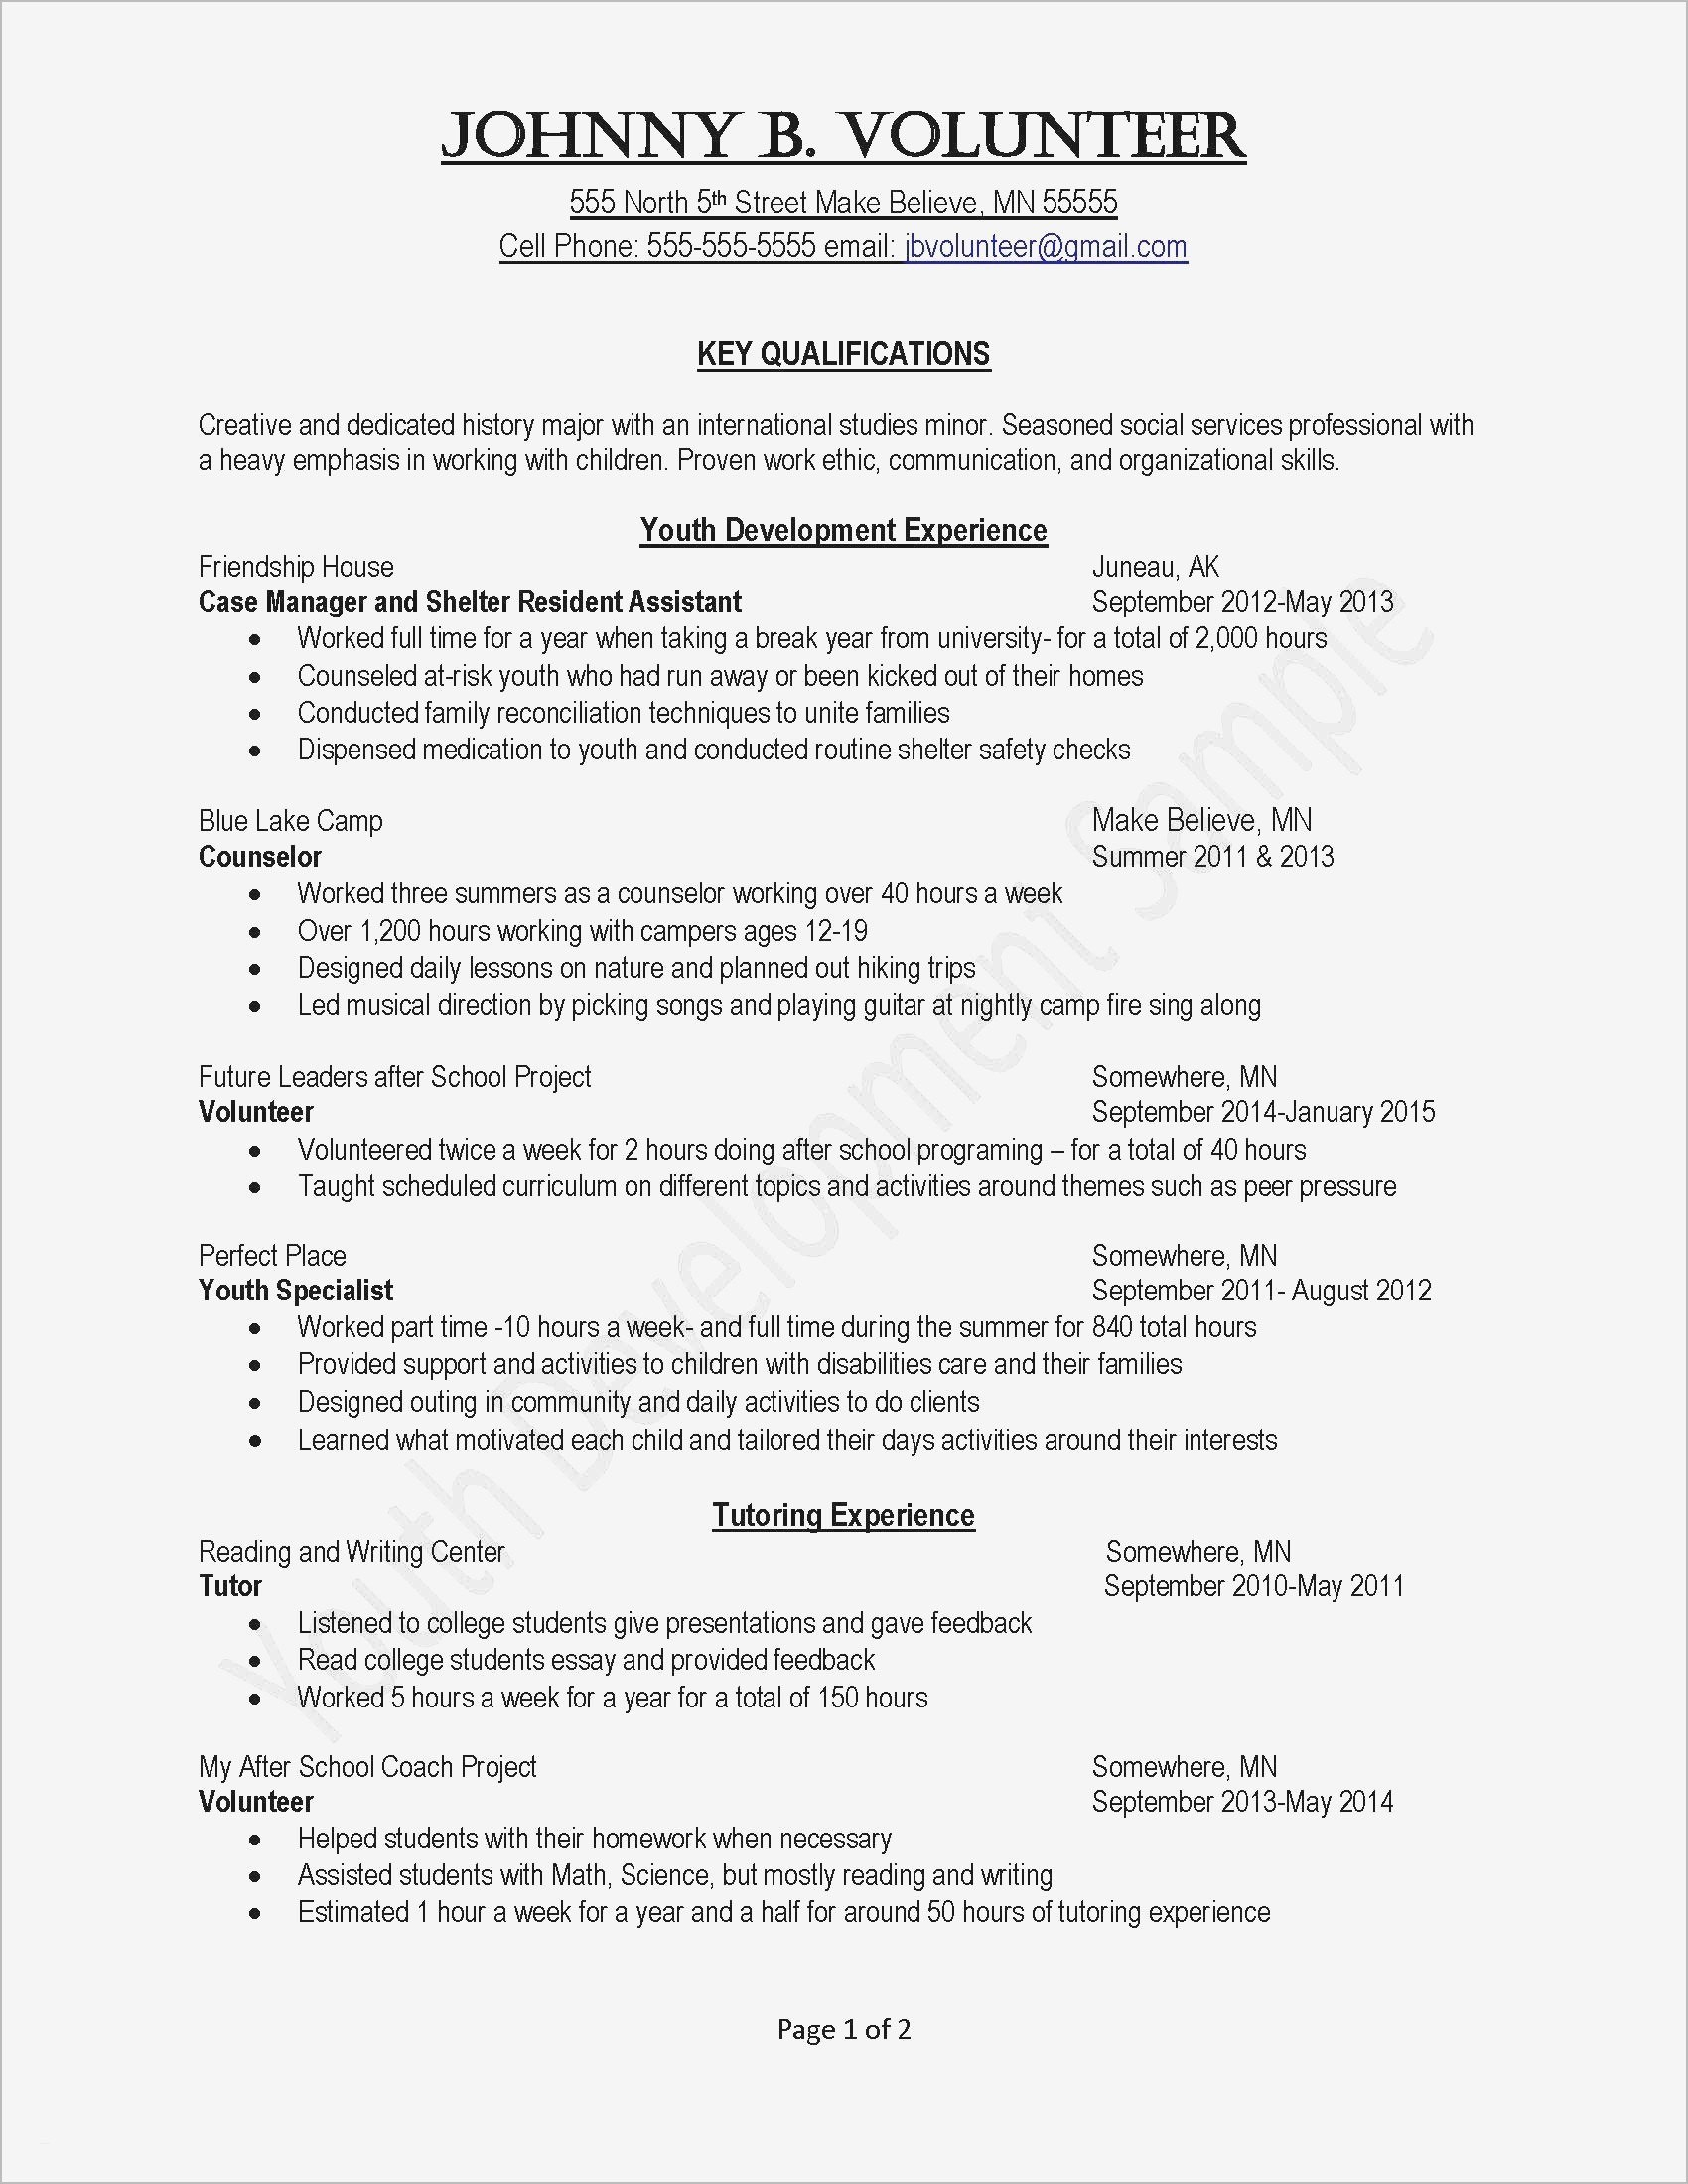 Application Cover Letter Template - Copy A Cover Letter for A Job Application Beautiful Elegant Job